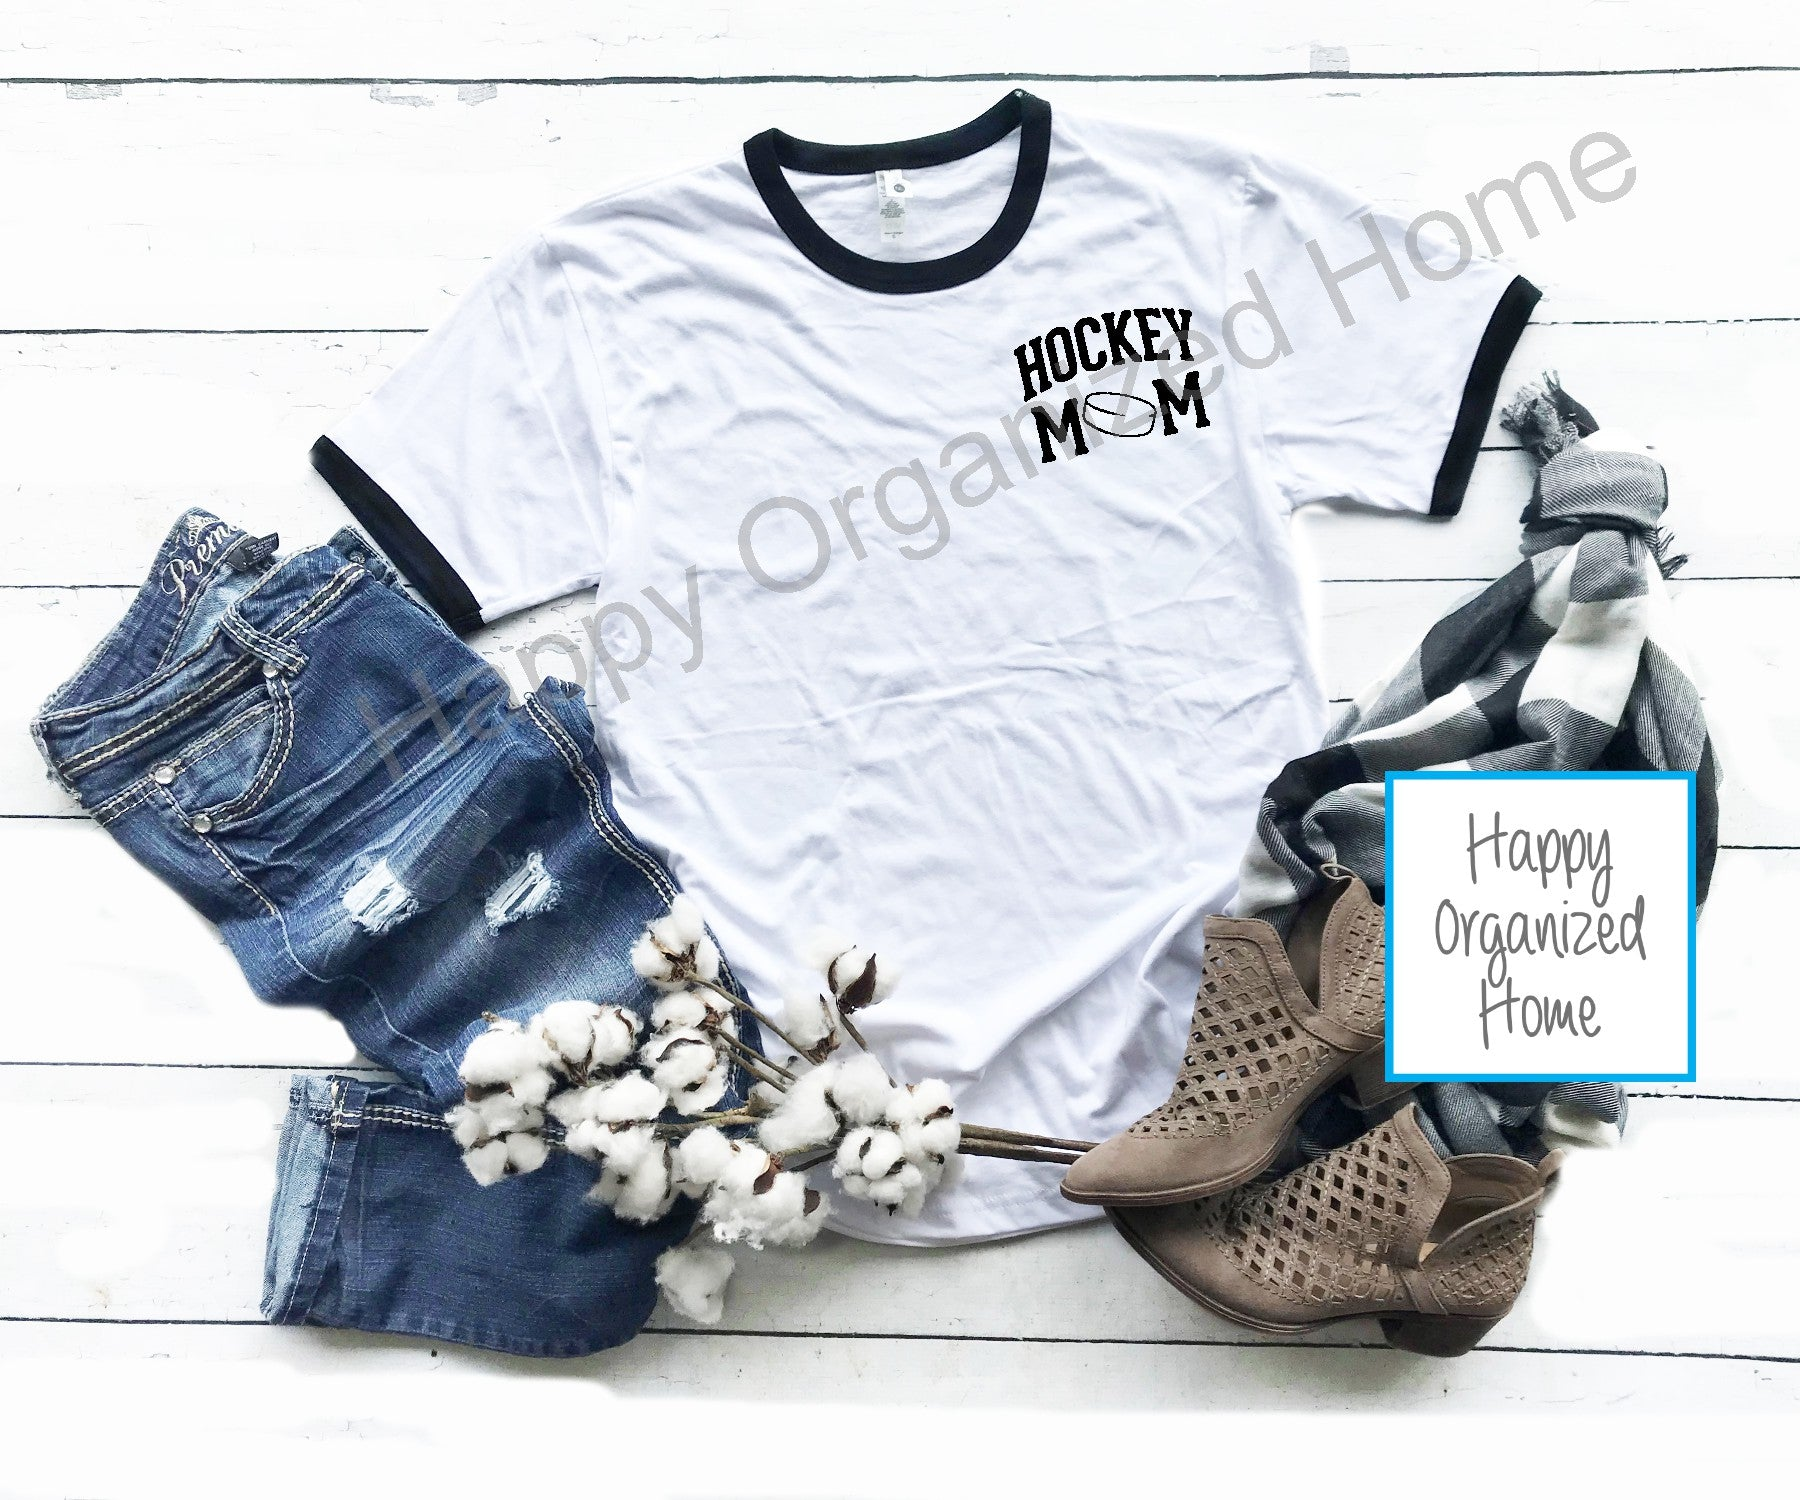 Hockey Mom - Ladies Ringer Tee